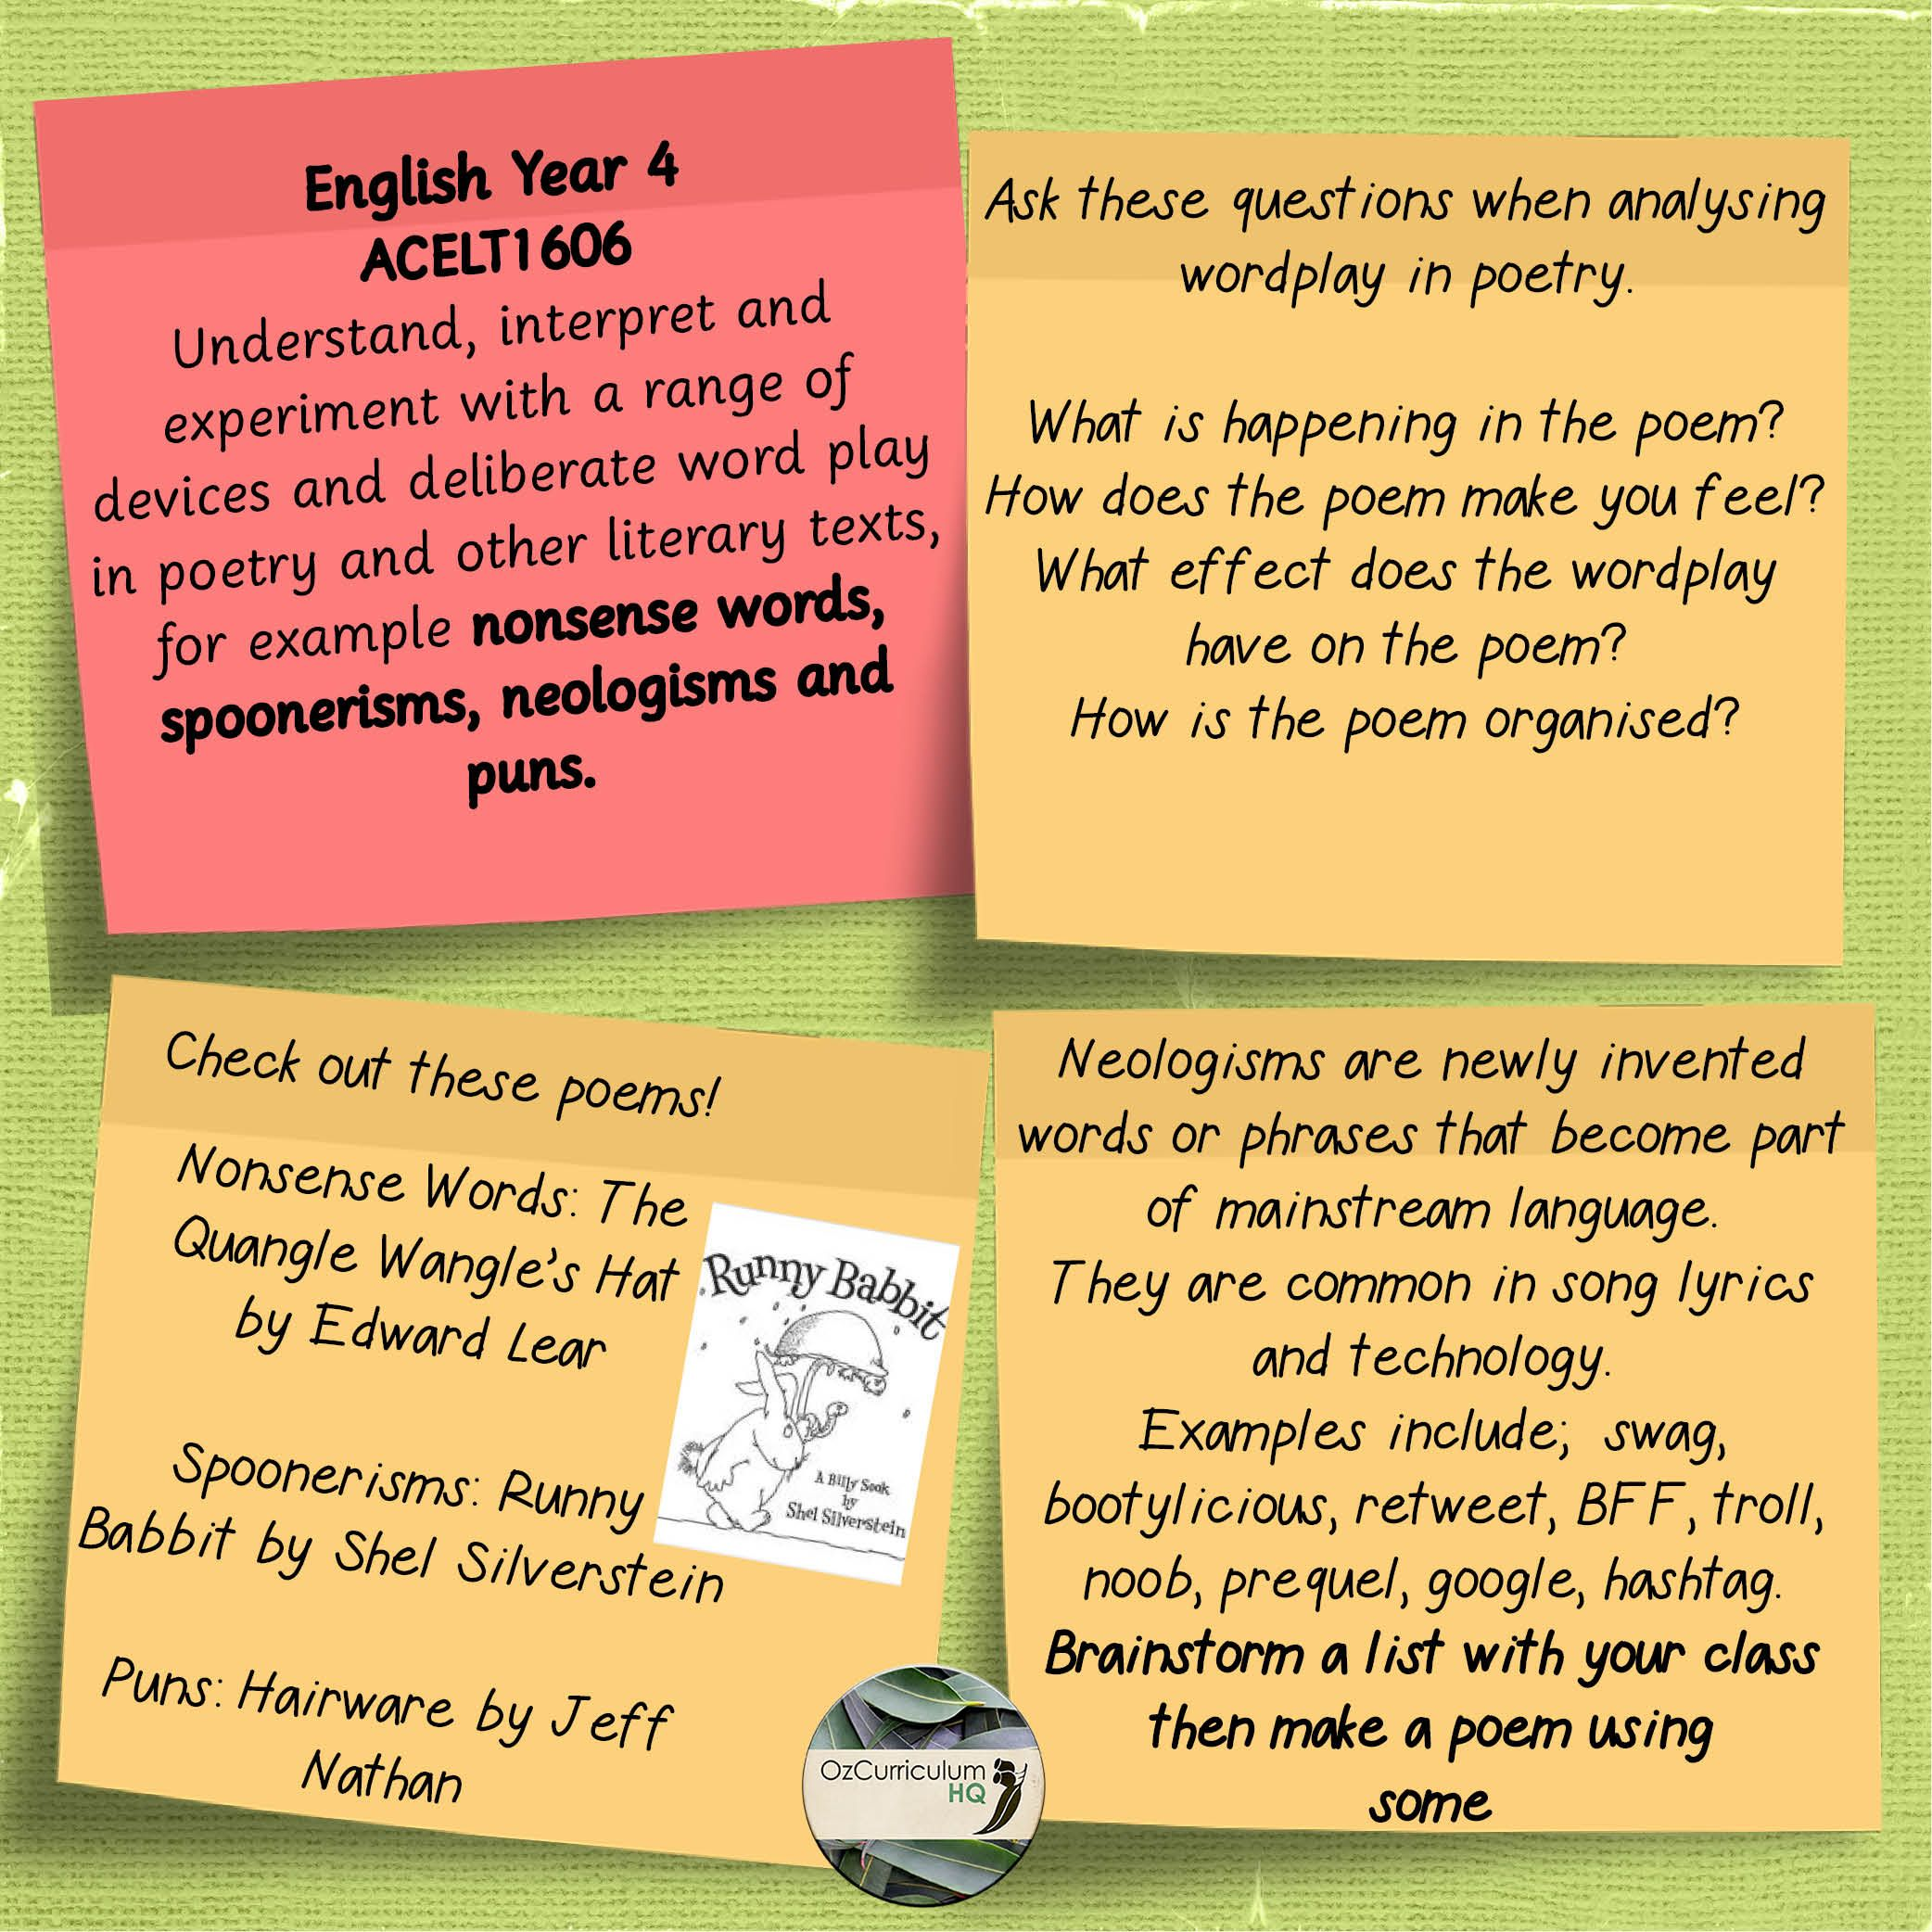 English Year 4 Acelt Nonsense Words Spoonerisms